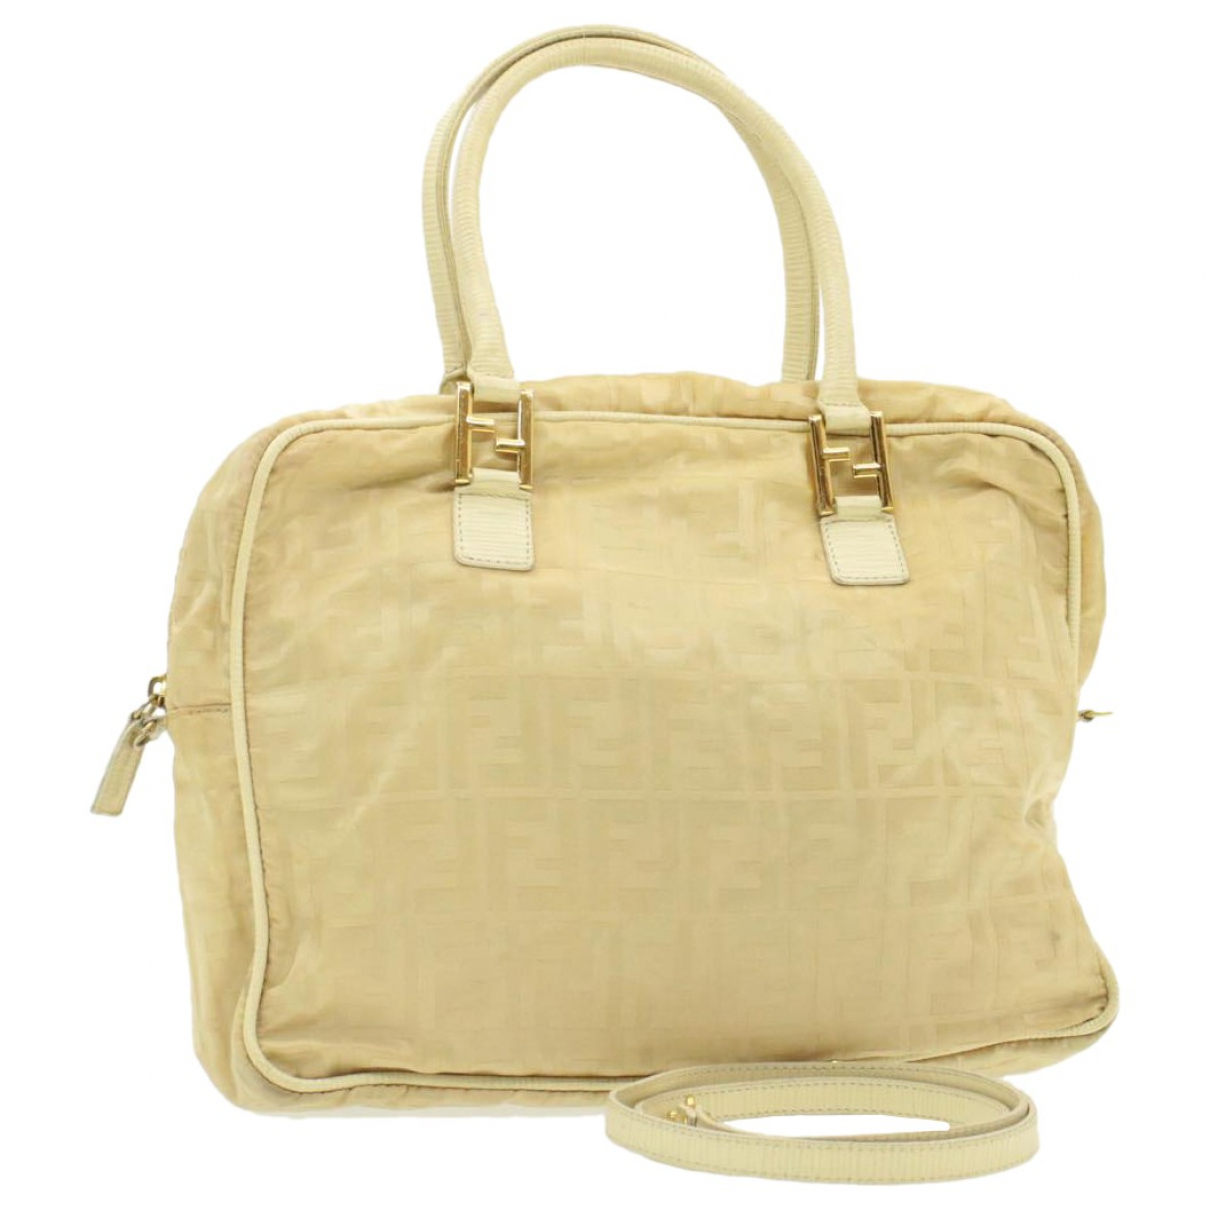 Fendi \N Beige Cloth handbag for Women \N